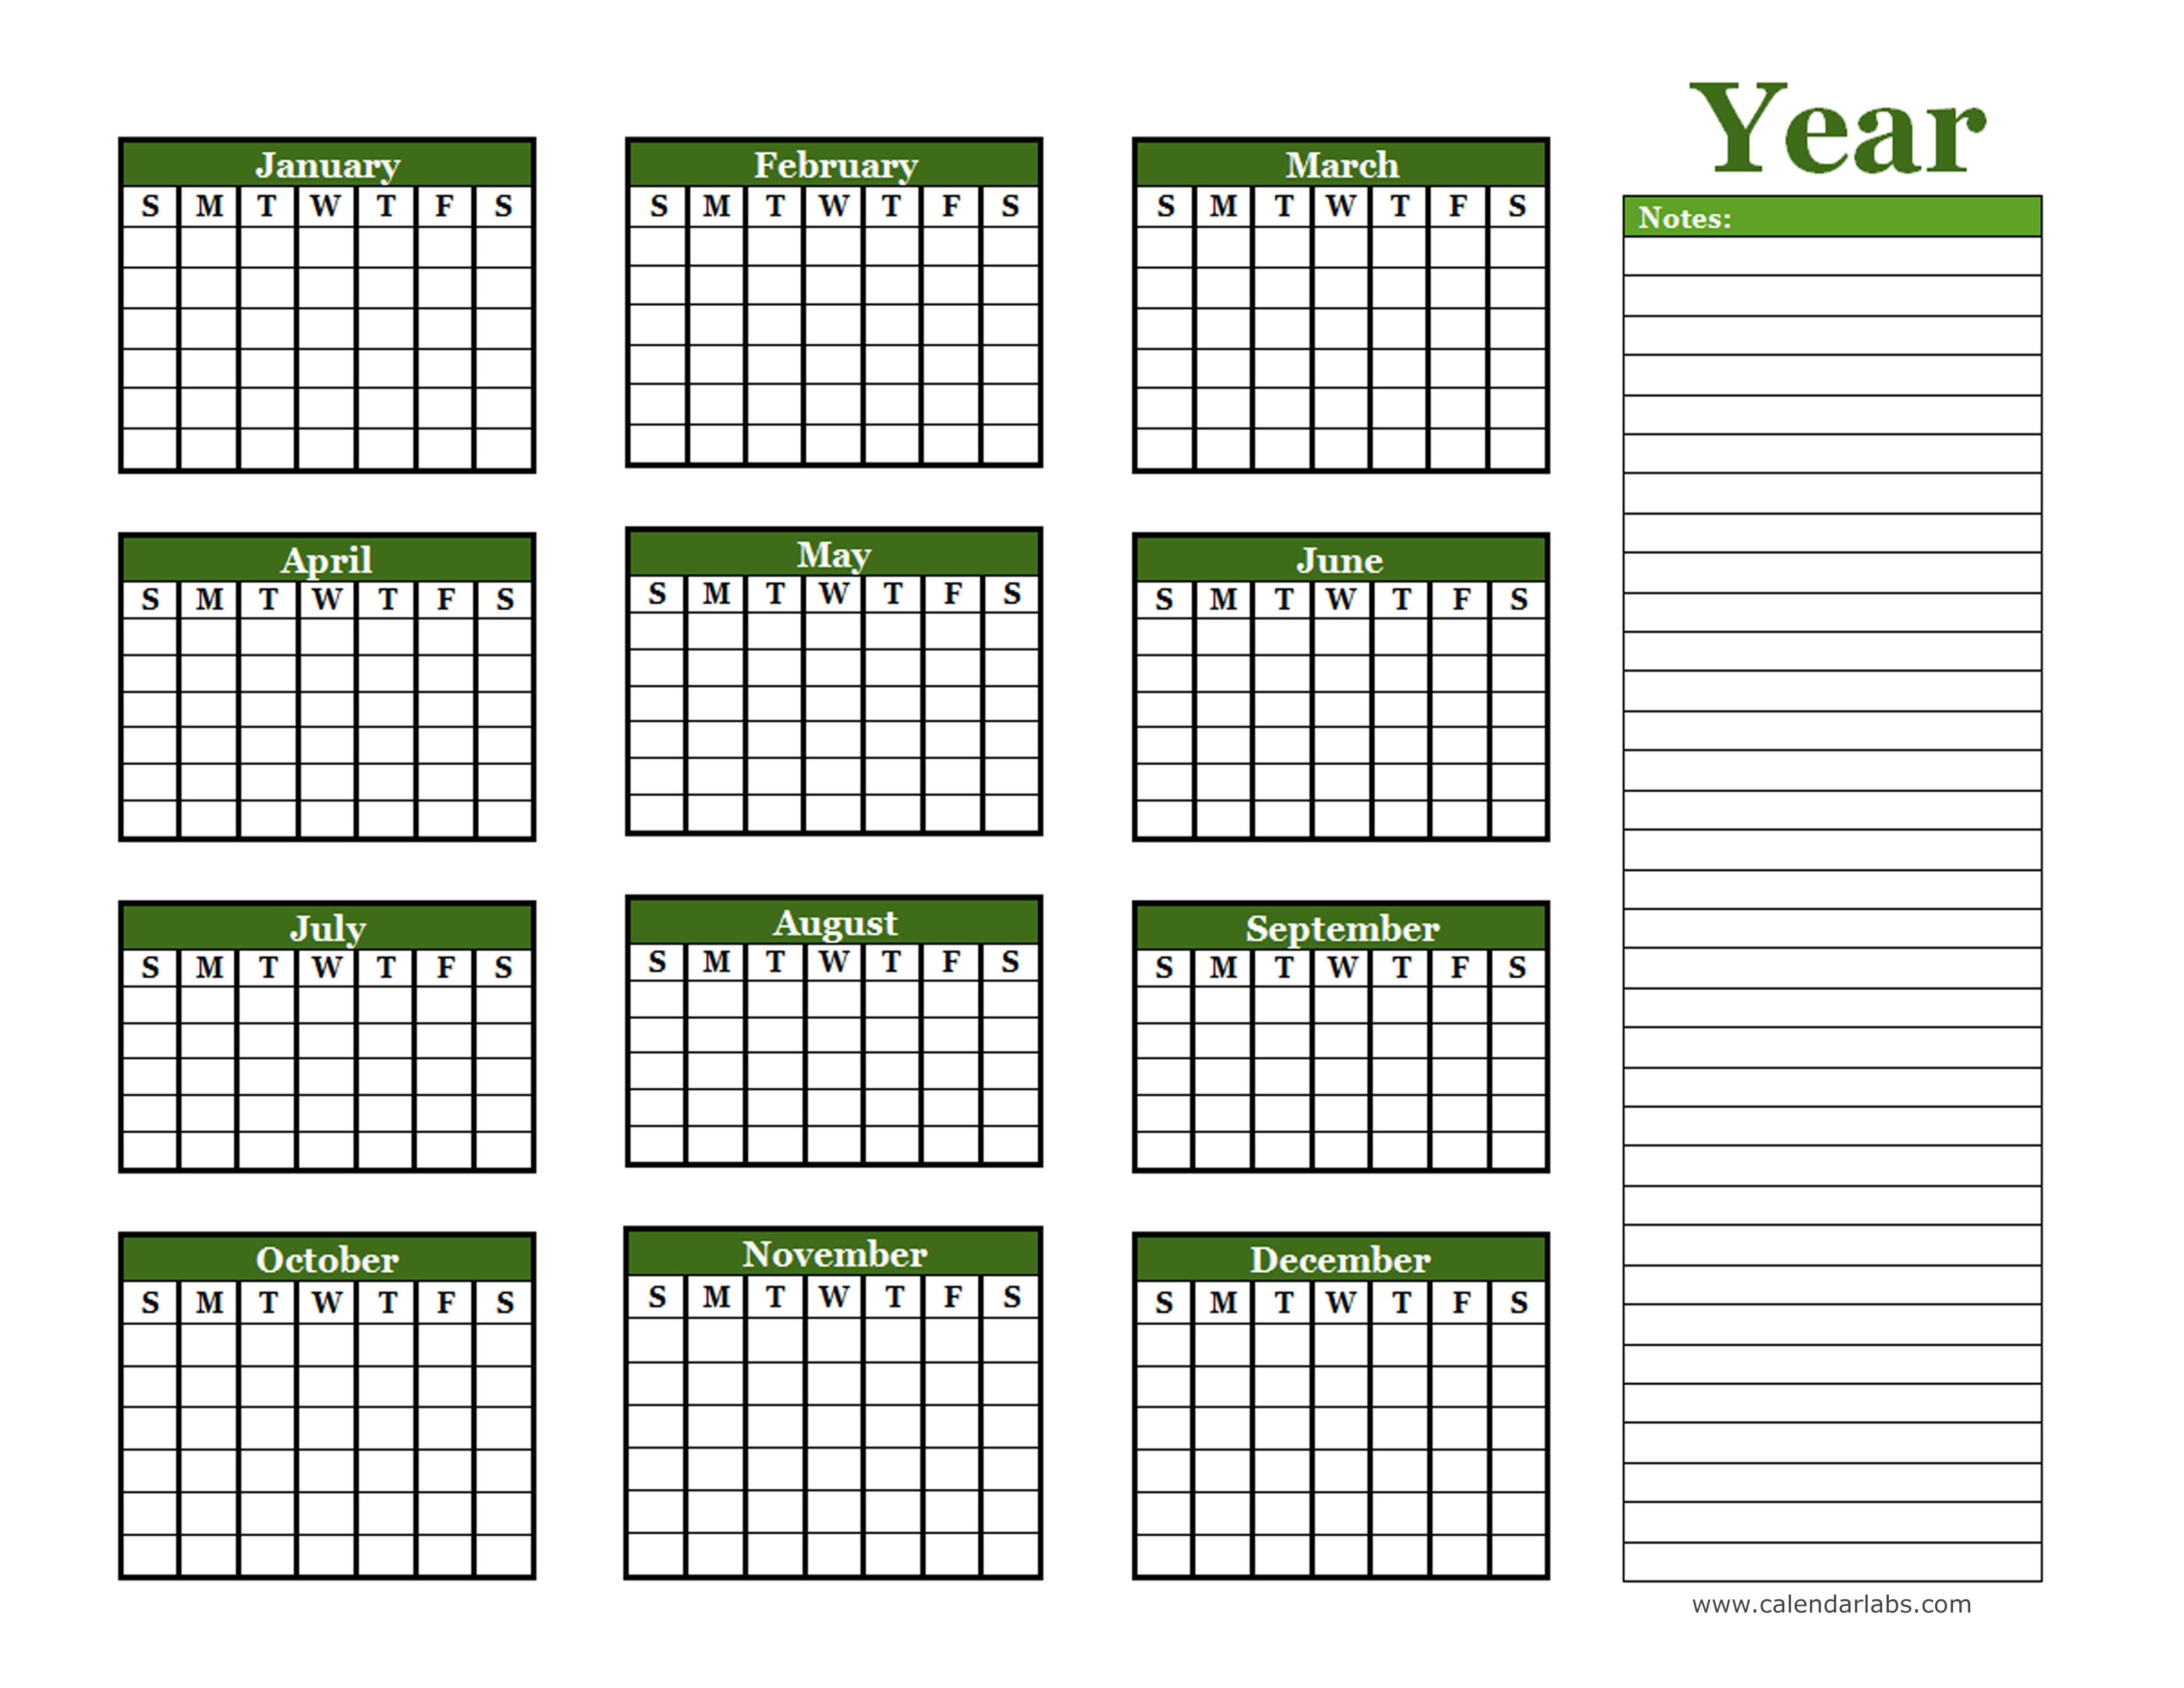 Free Year Long Calendar Template | Jobs At Kmart regarding Year Long Calendar Template